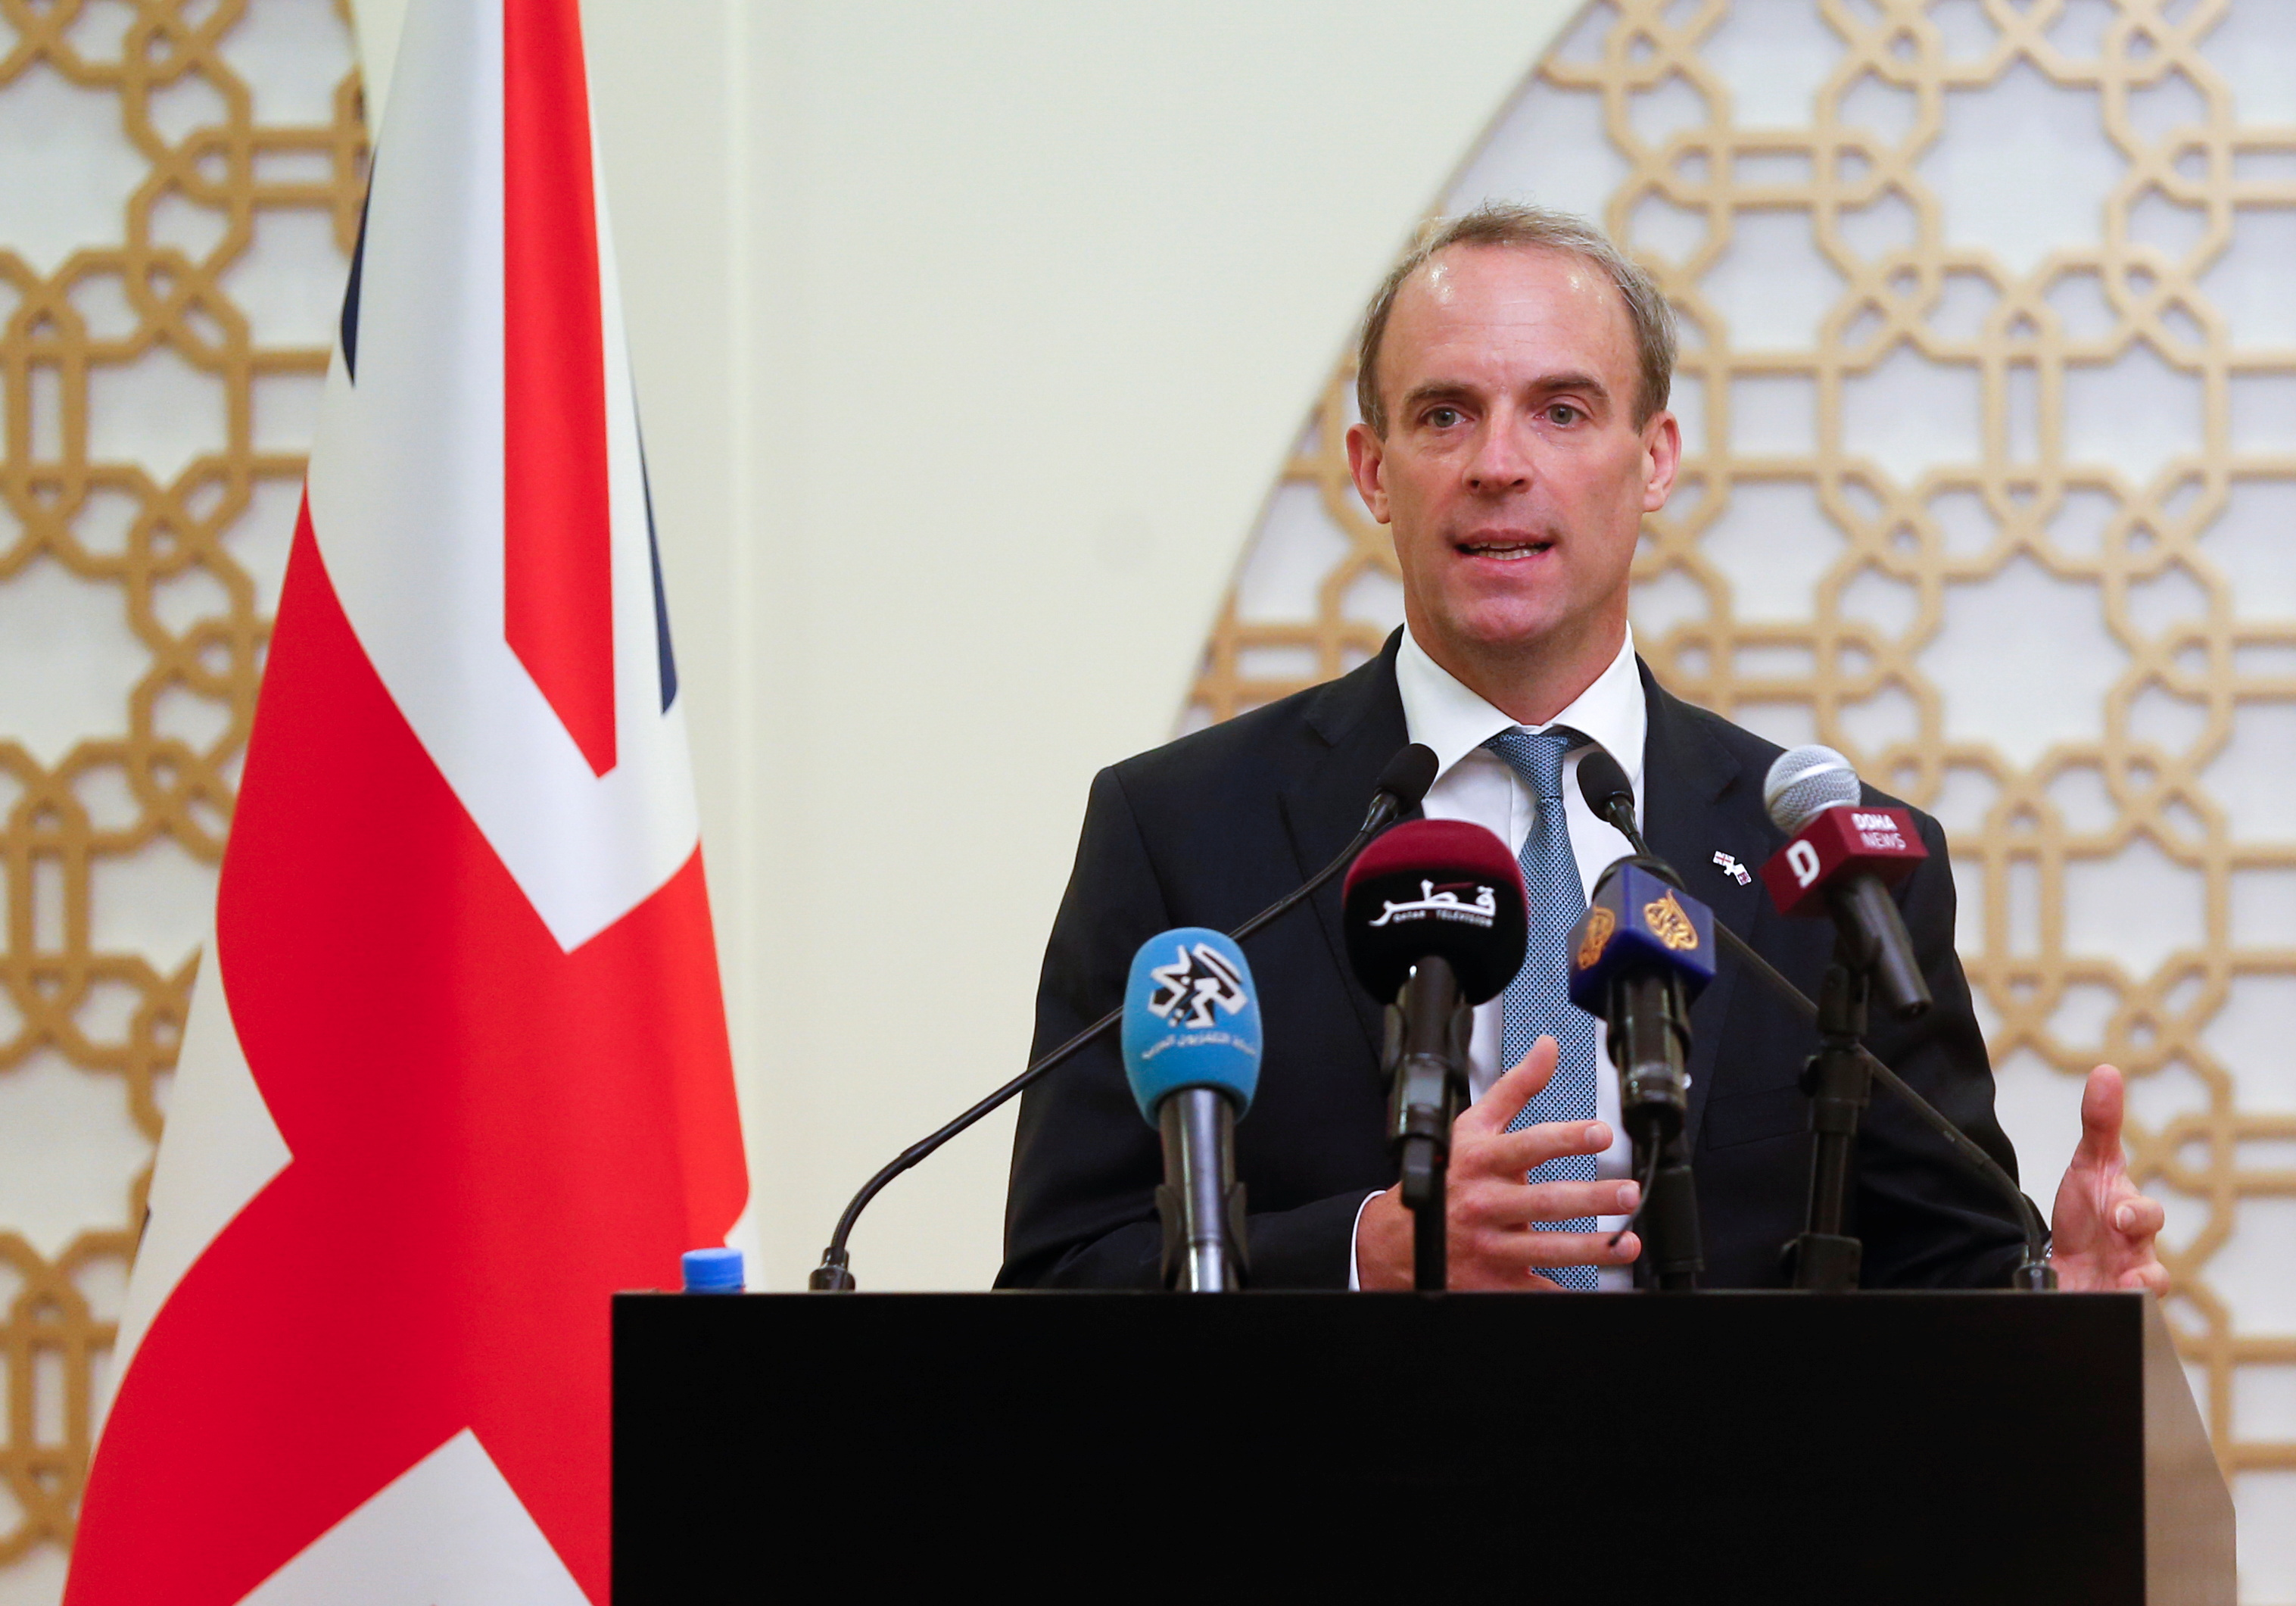 Britain's Foreign Secretary Dominic Raab speaks during a joint news conference with Qatari Foreign Minister Sheikh Mohammed bin Abdulrahman Al-Thani in Doha, Qatar, September 2, 2021. REUTERS/Hamad l Mohammed